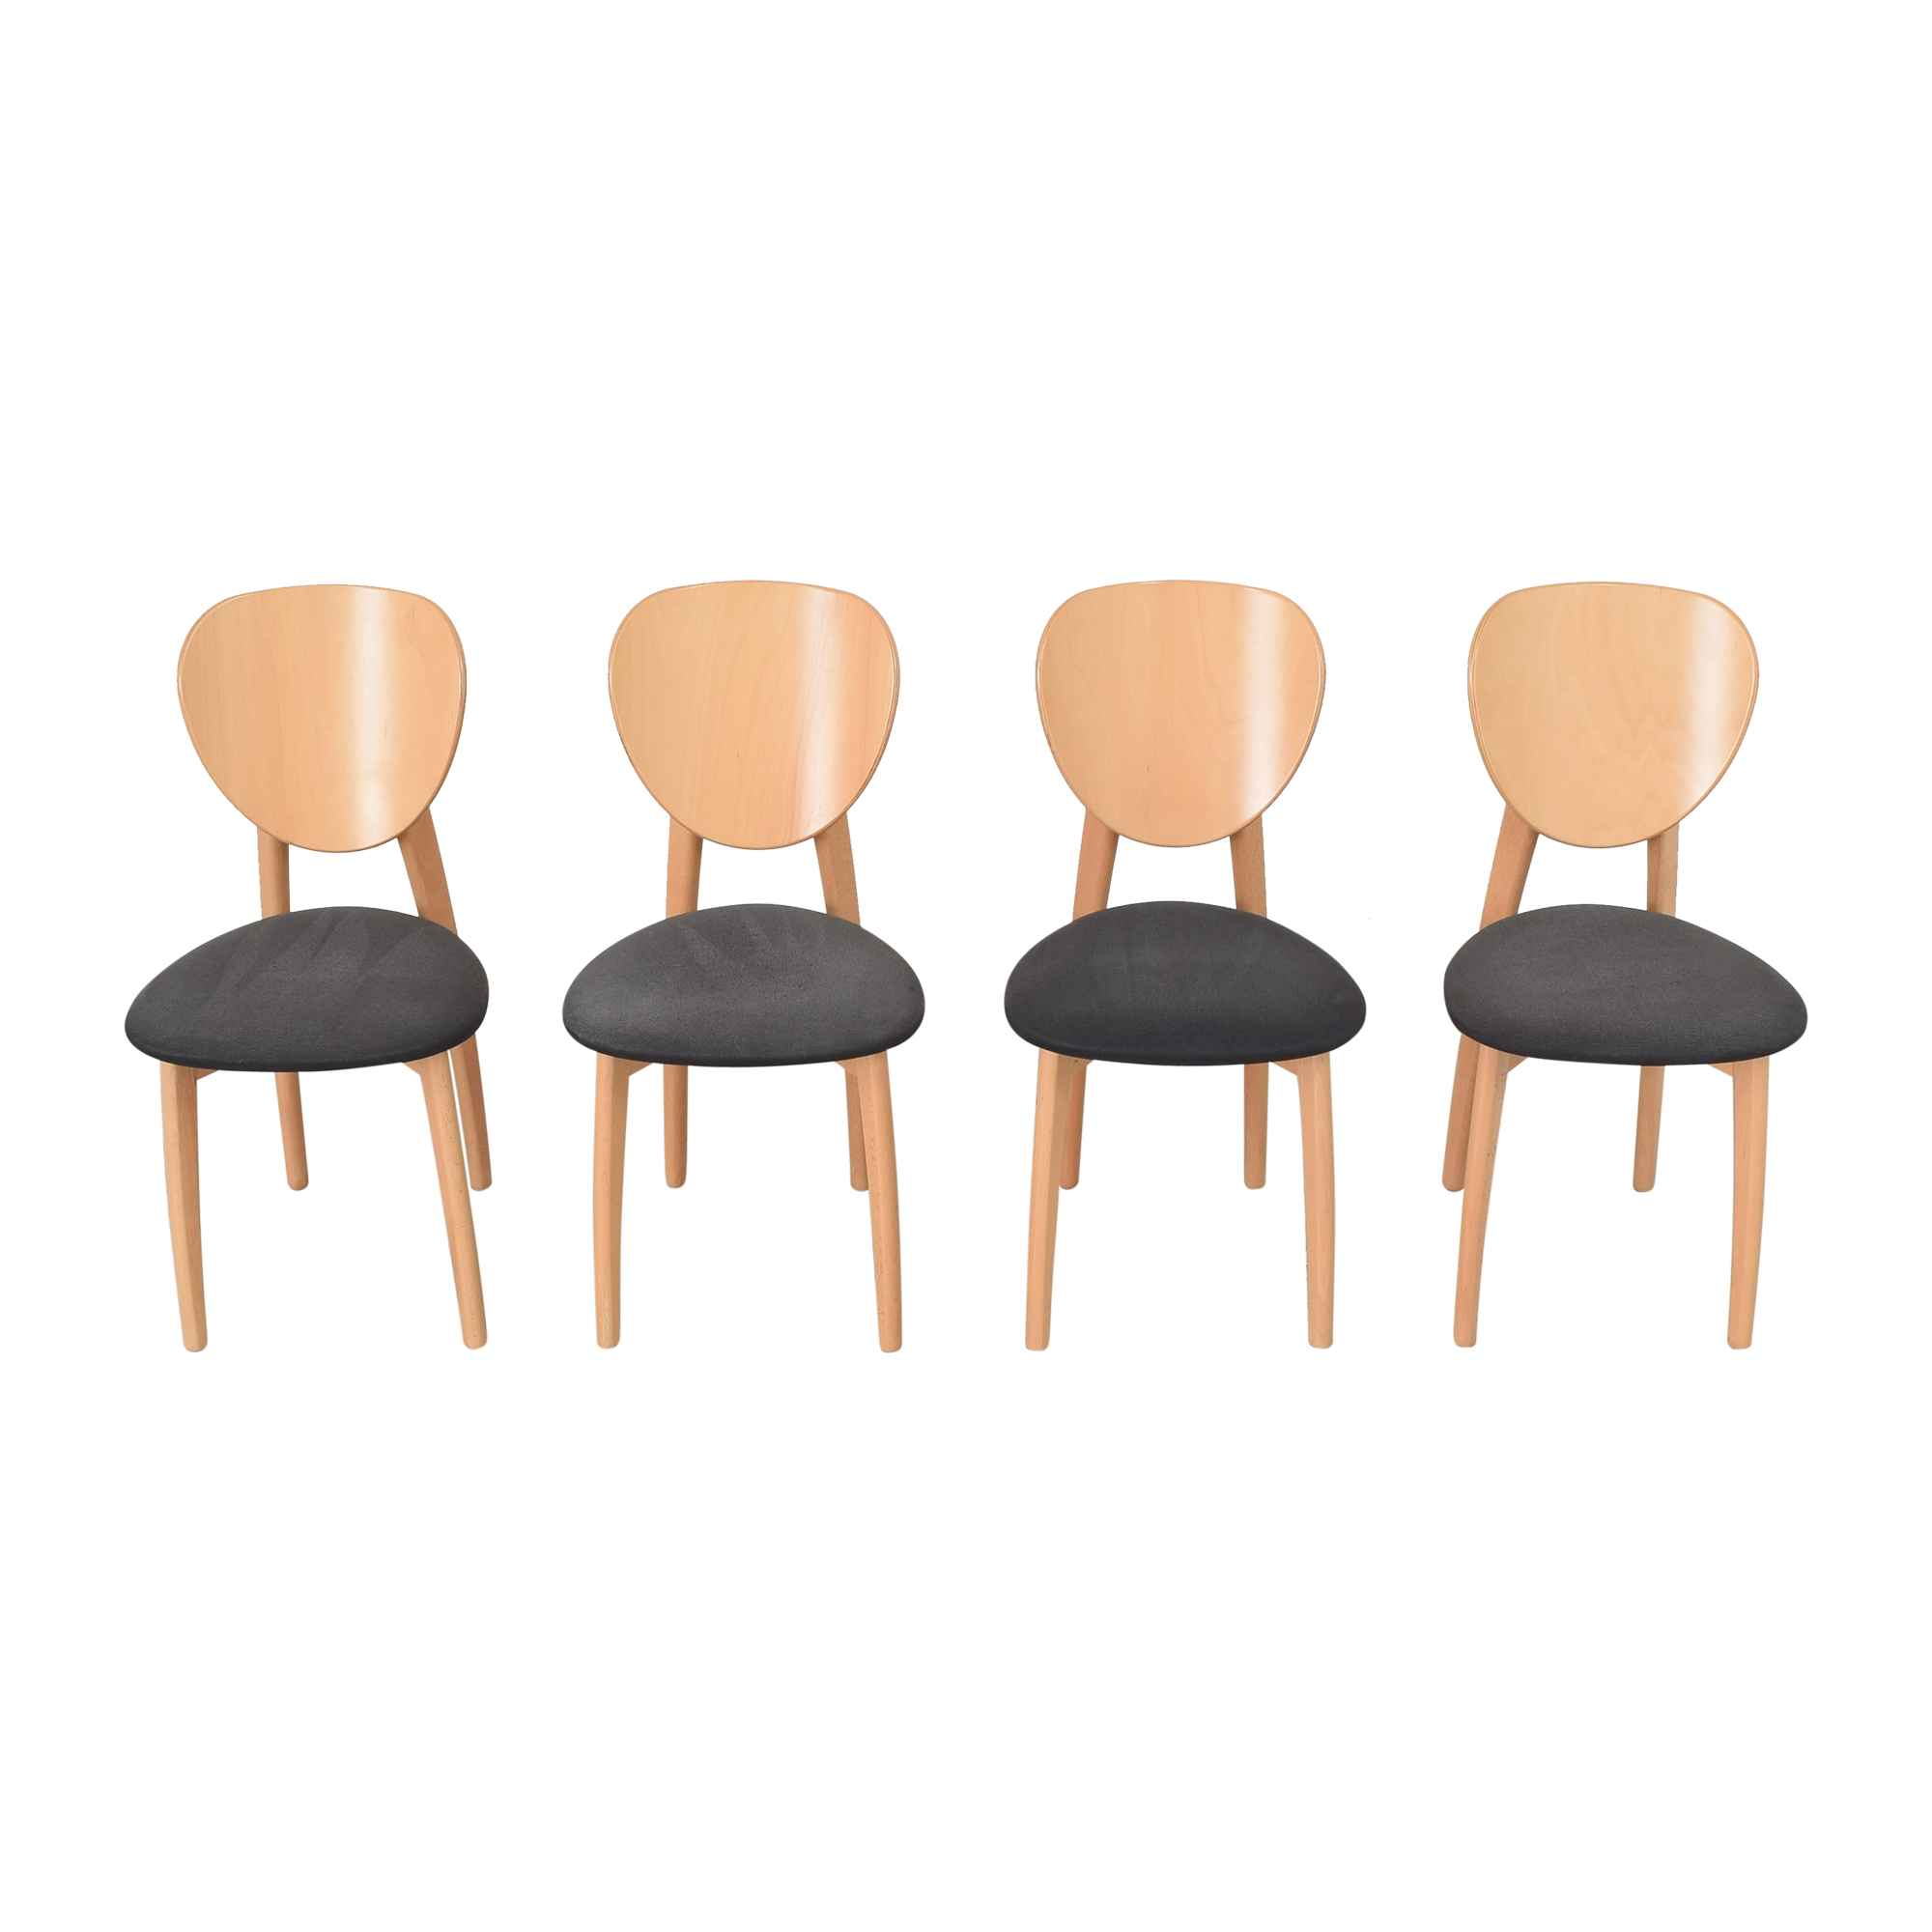 Calligaris Calligaris Modern Dining Chairs dimensions